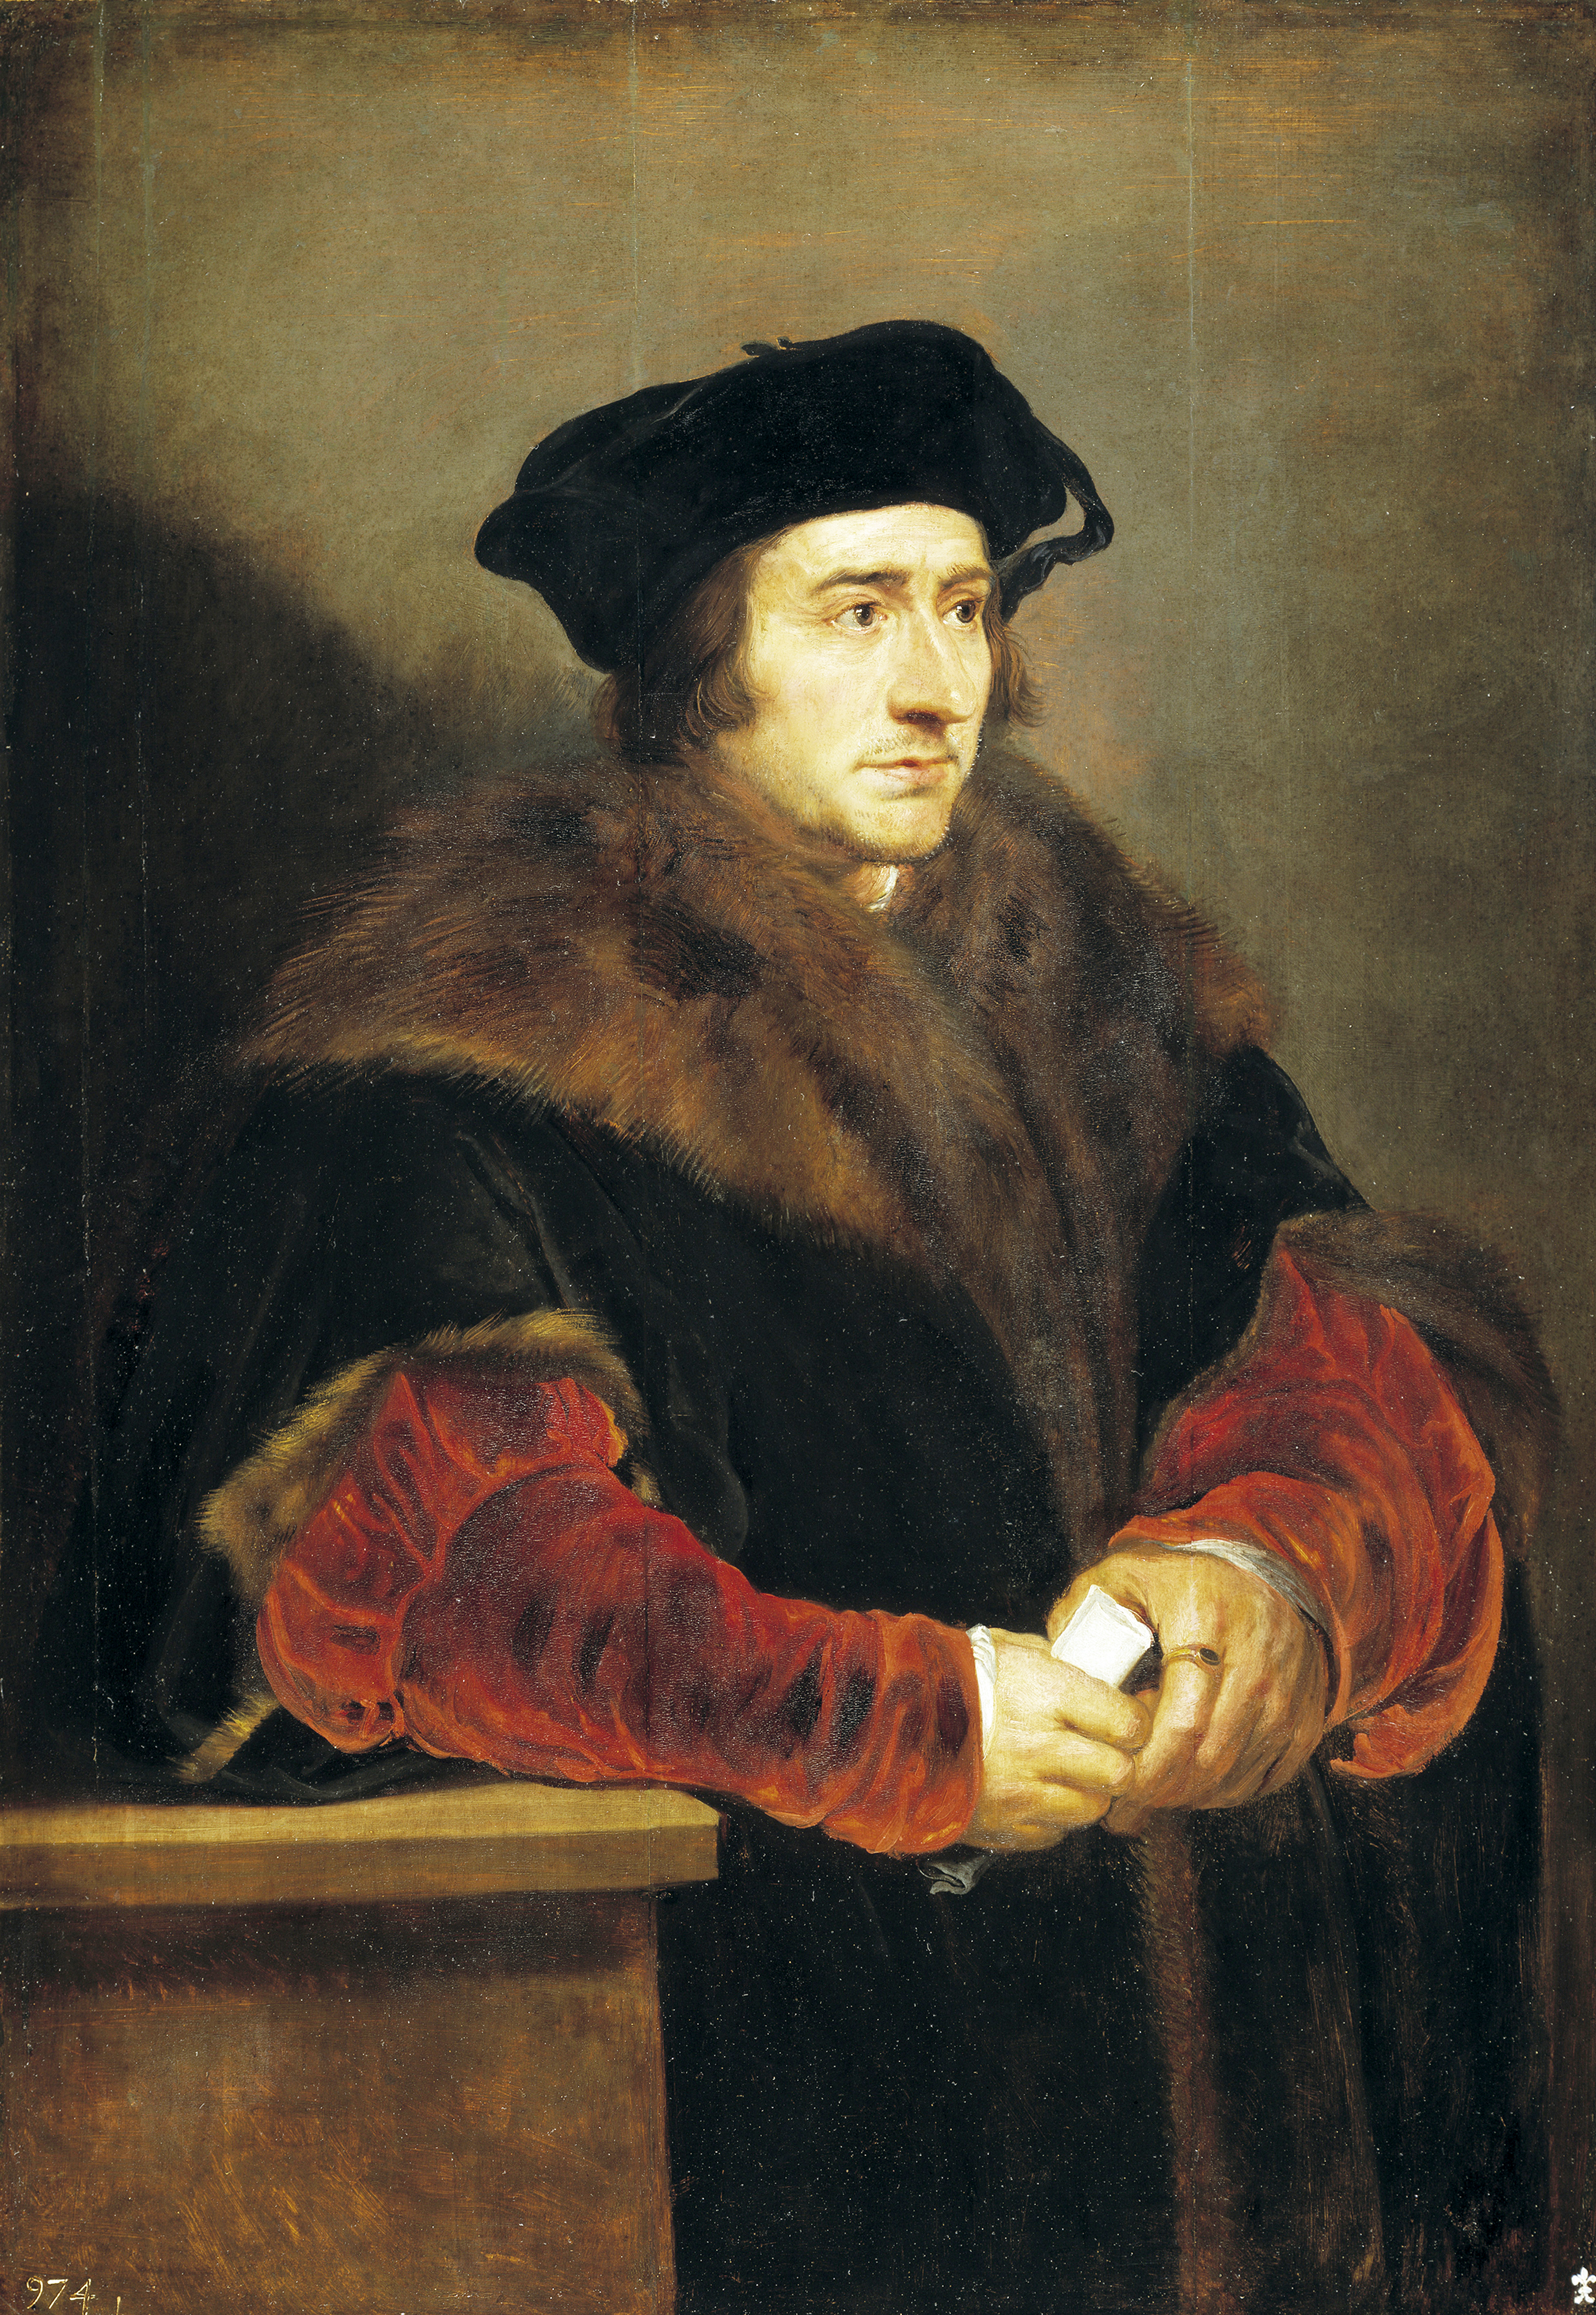 Portrait of Sir Thomas More, 1625-1630. Found in the collection of the Museo del Prado, Madrid.